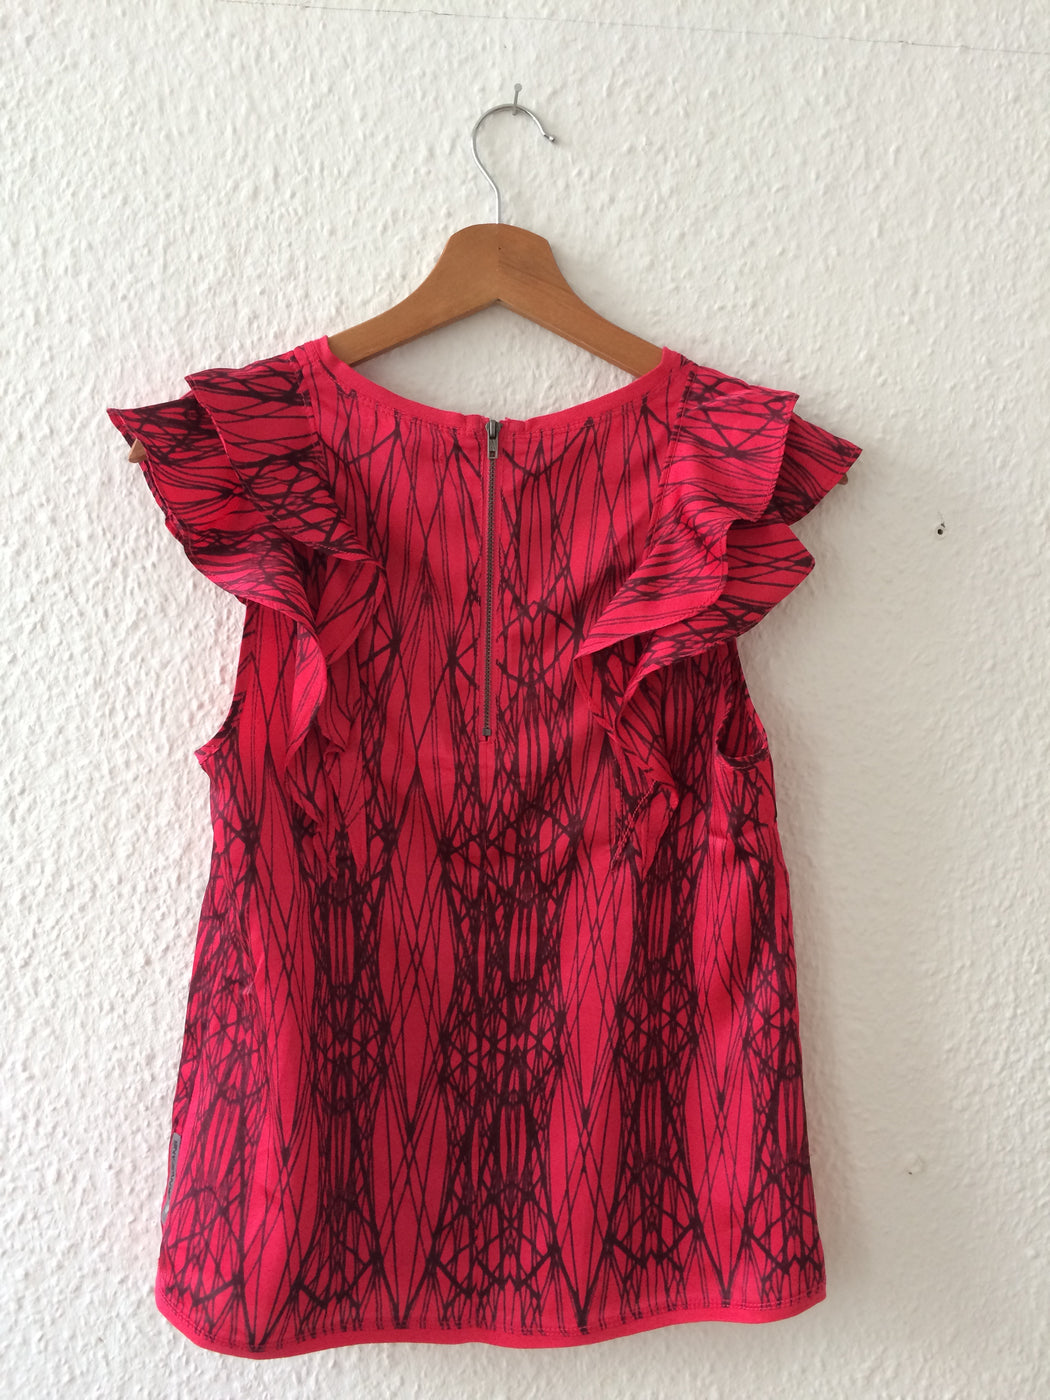 Deep Red-Black Polyester Modern Dkny Blouse Sleeveless Ruffled Size XXS/XS